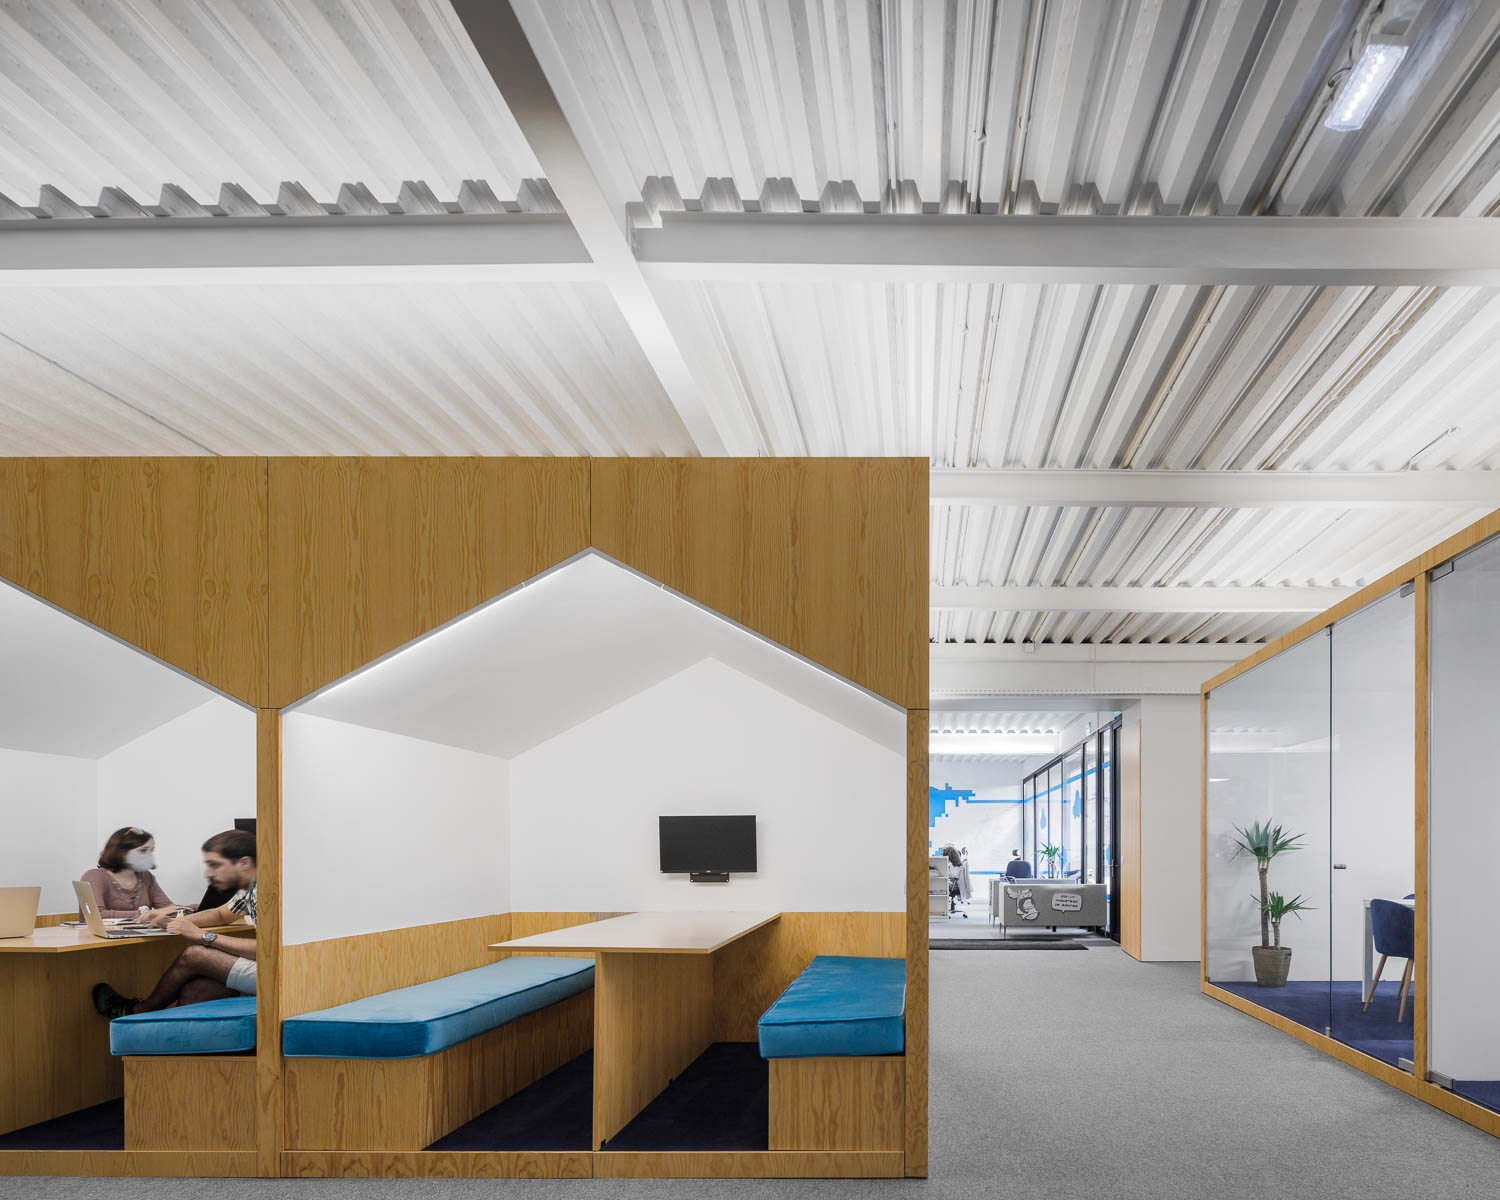 View of office showing wood-clad meeting booths with blue upholstered benches